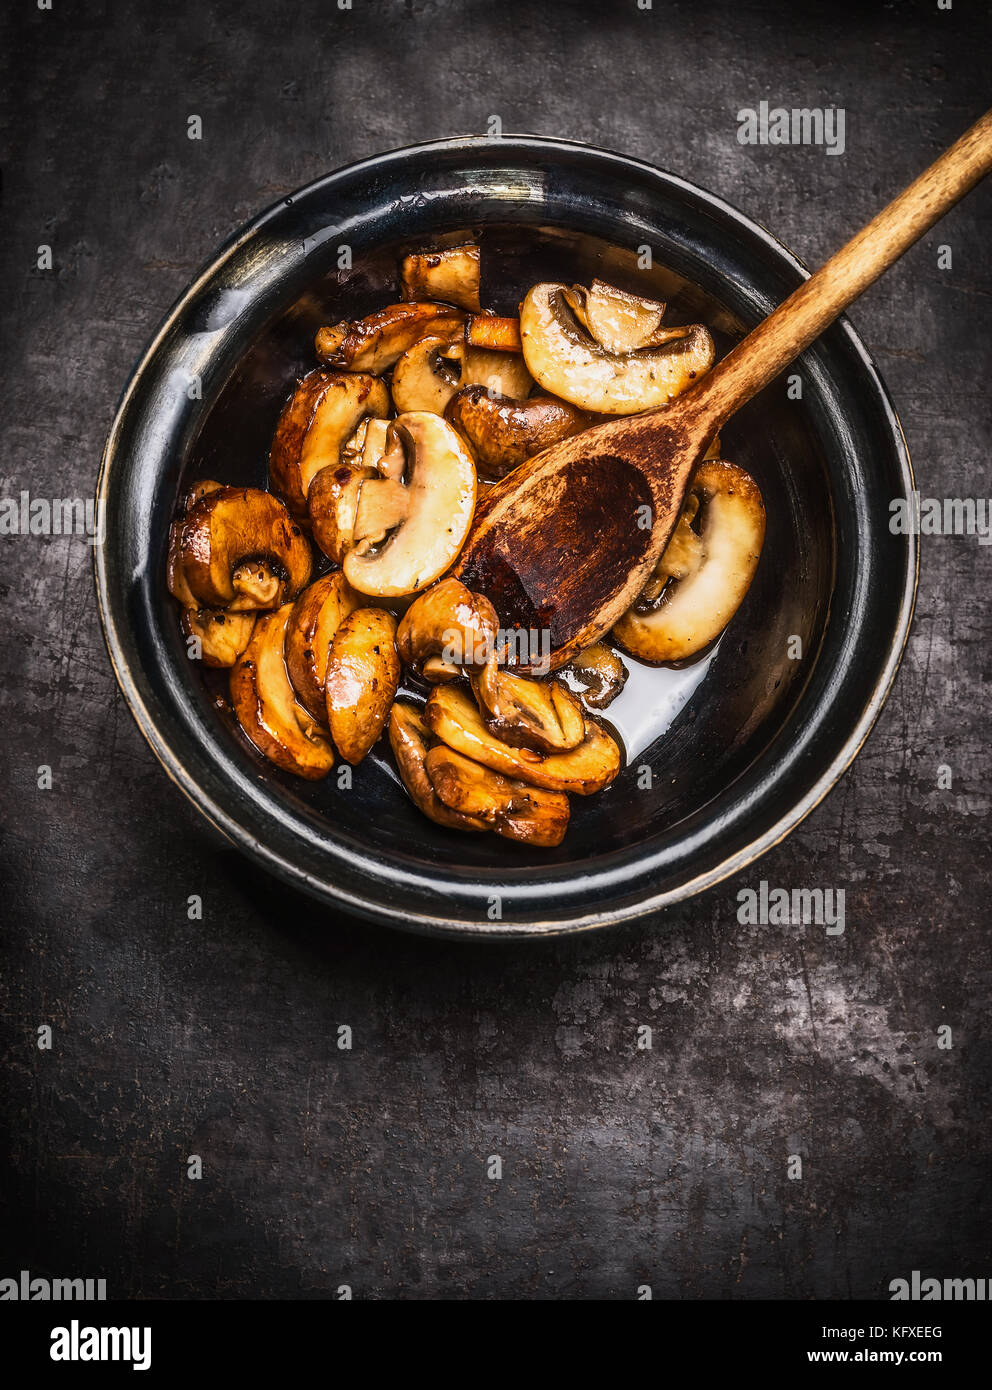 How to fry champignons 94